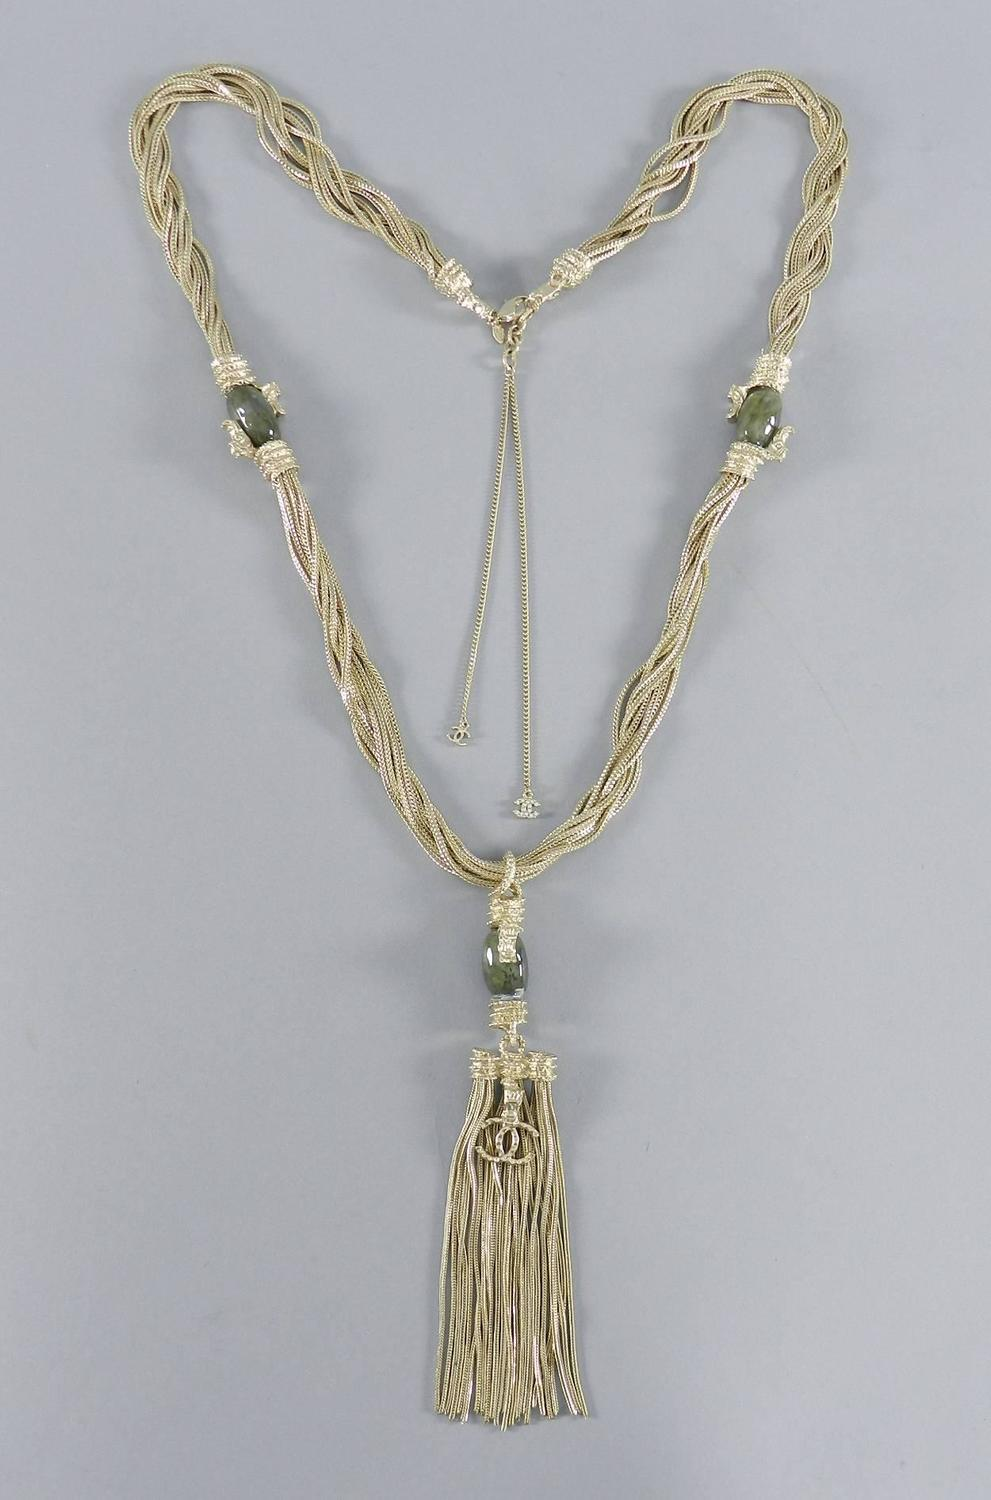 Gold rope necklace dragon age sly stallone steroids